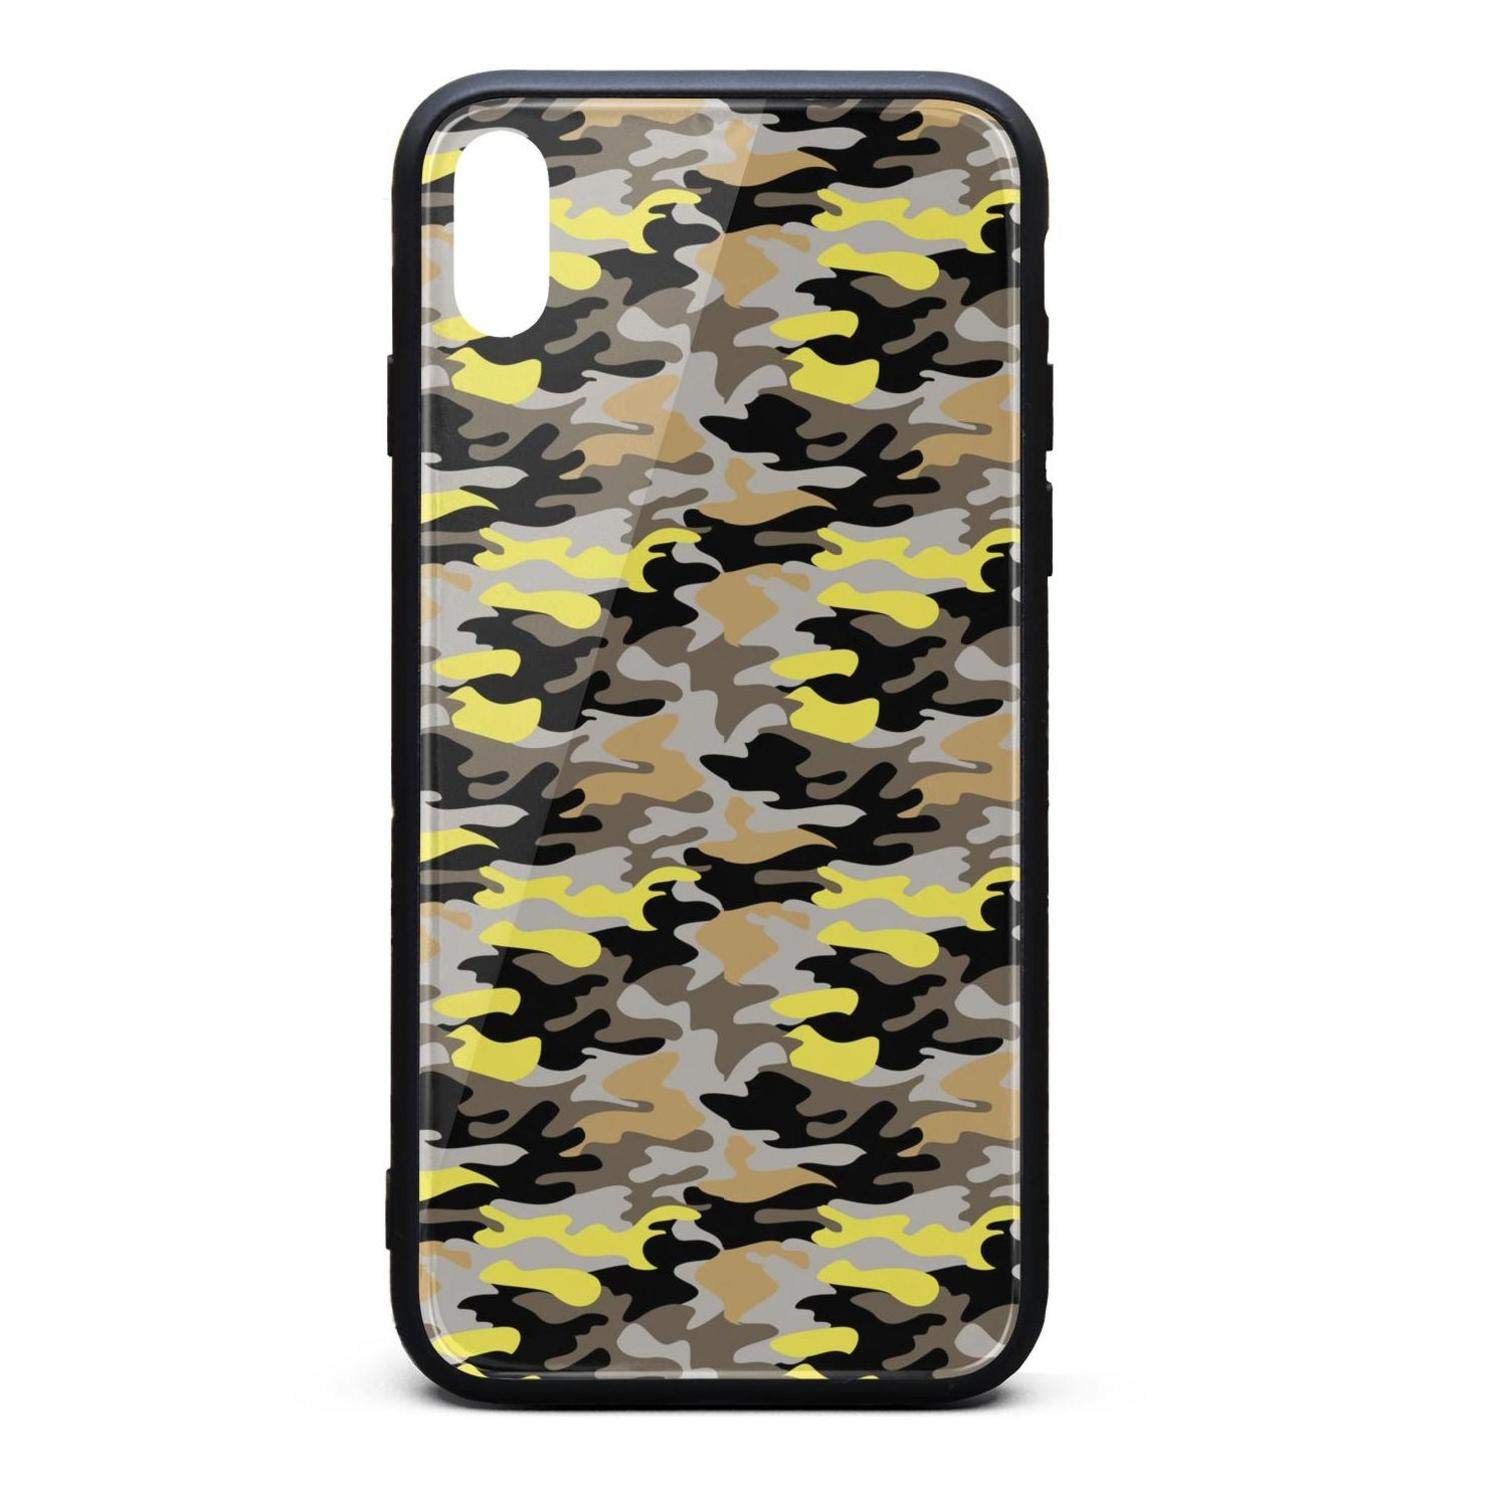 Amazon.com: Army Gear camo Decorations Phone Case for iPhone ...